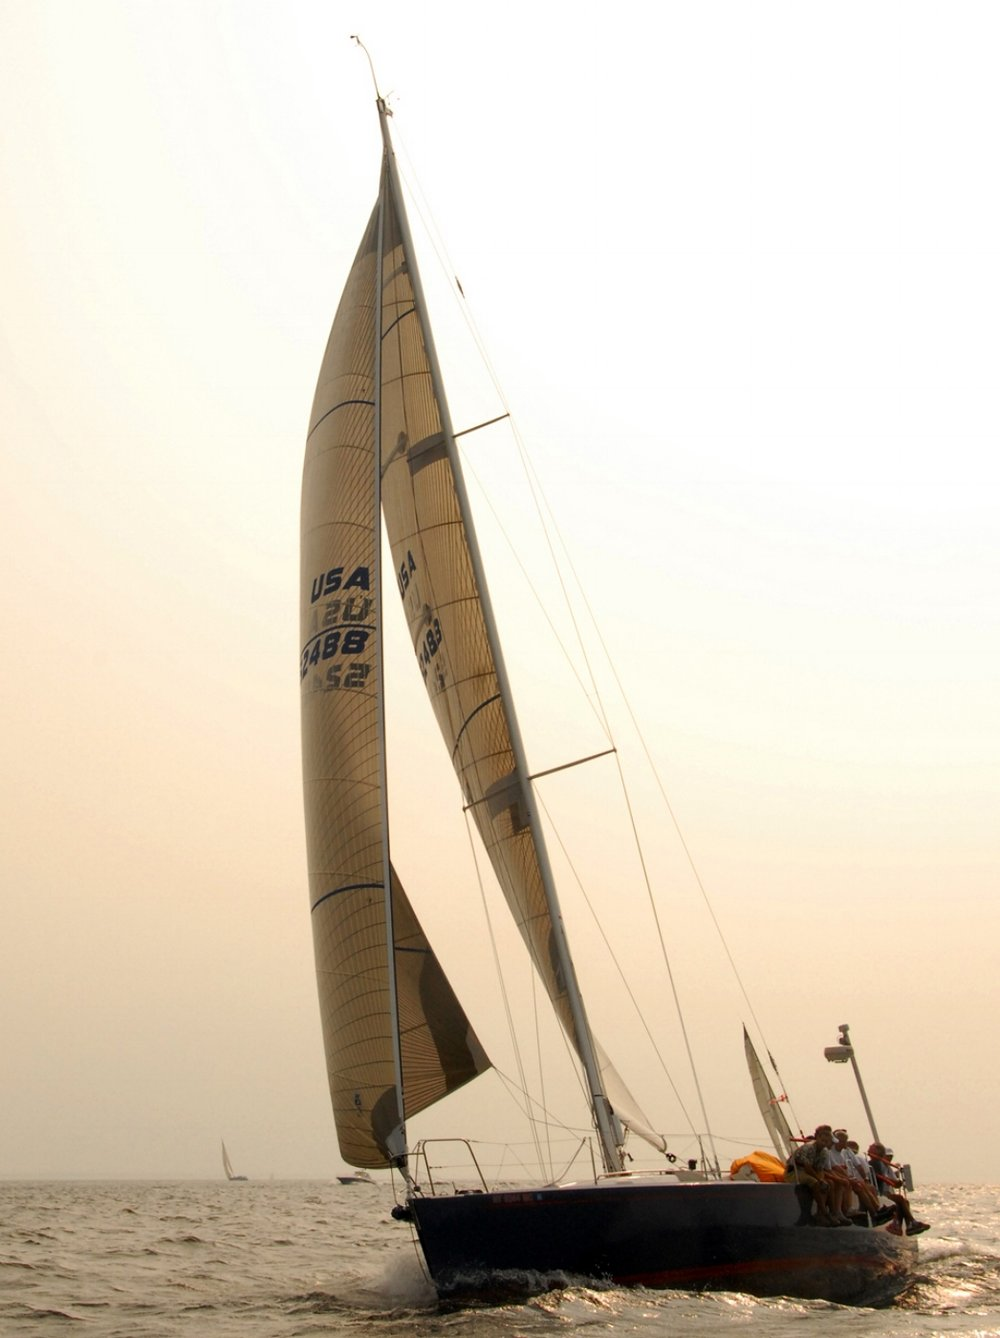 A 43-foot J/133 sailing with a Jib Top on a reach too close for a spinnaker or Code Zero.